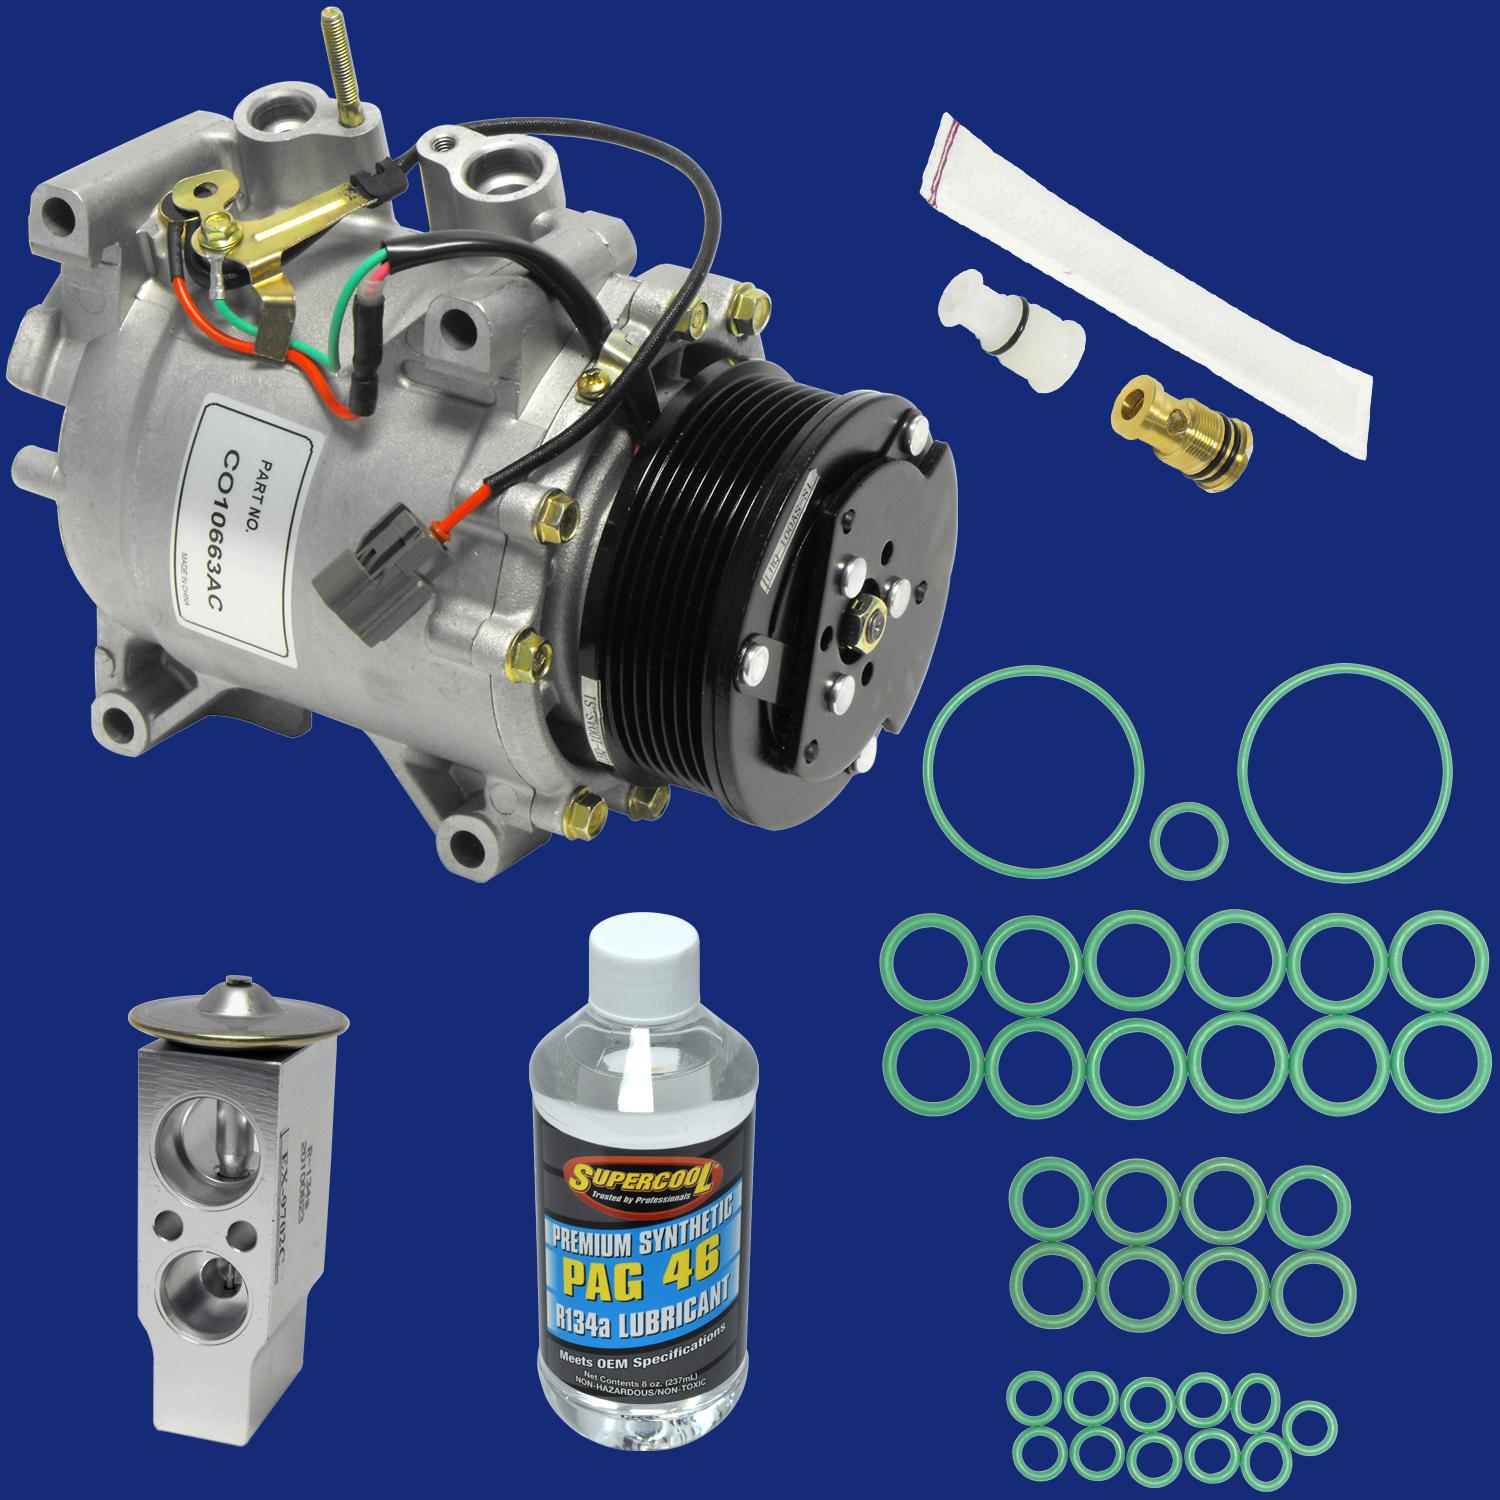 The Compressor & Component Kit includes additional items that must also be replaced.